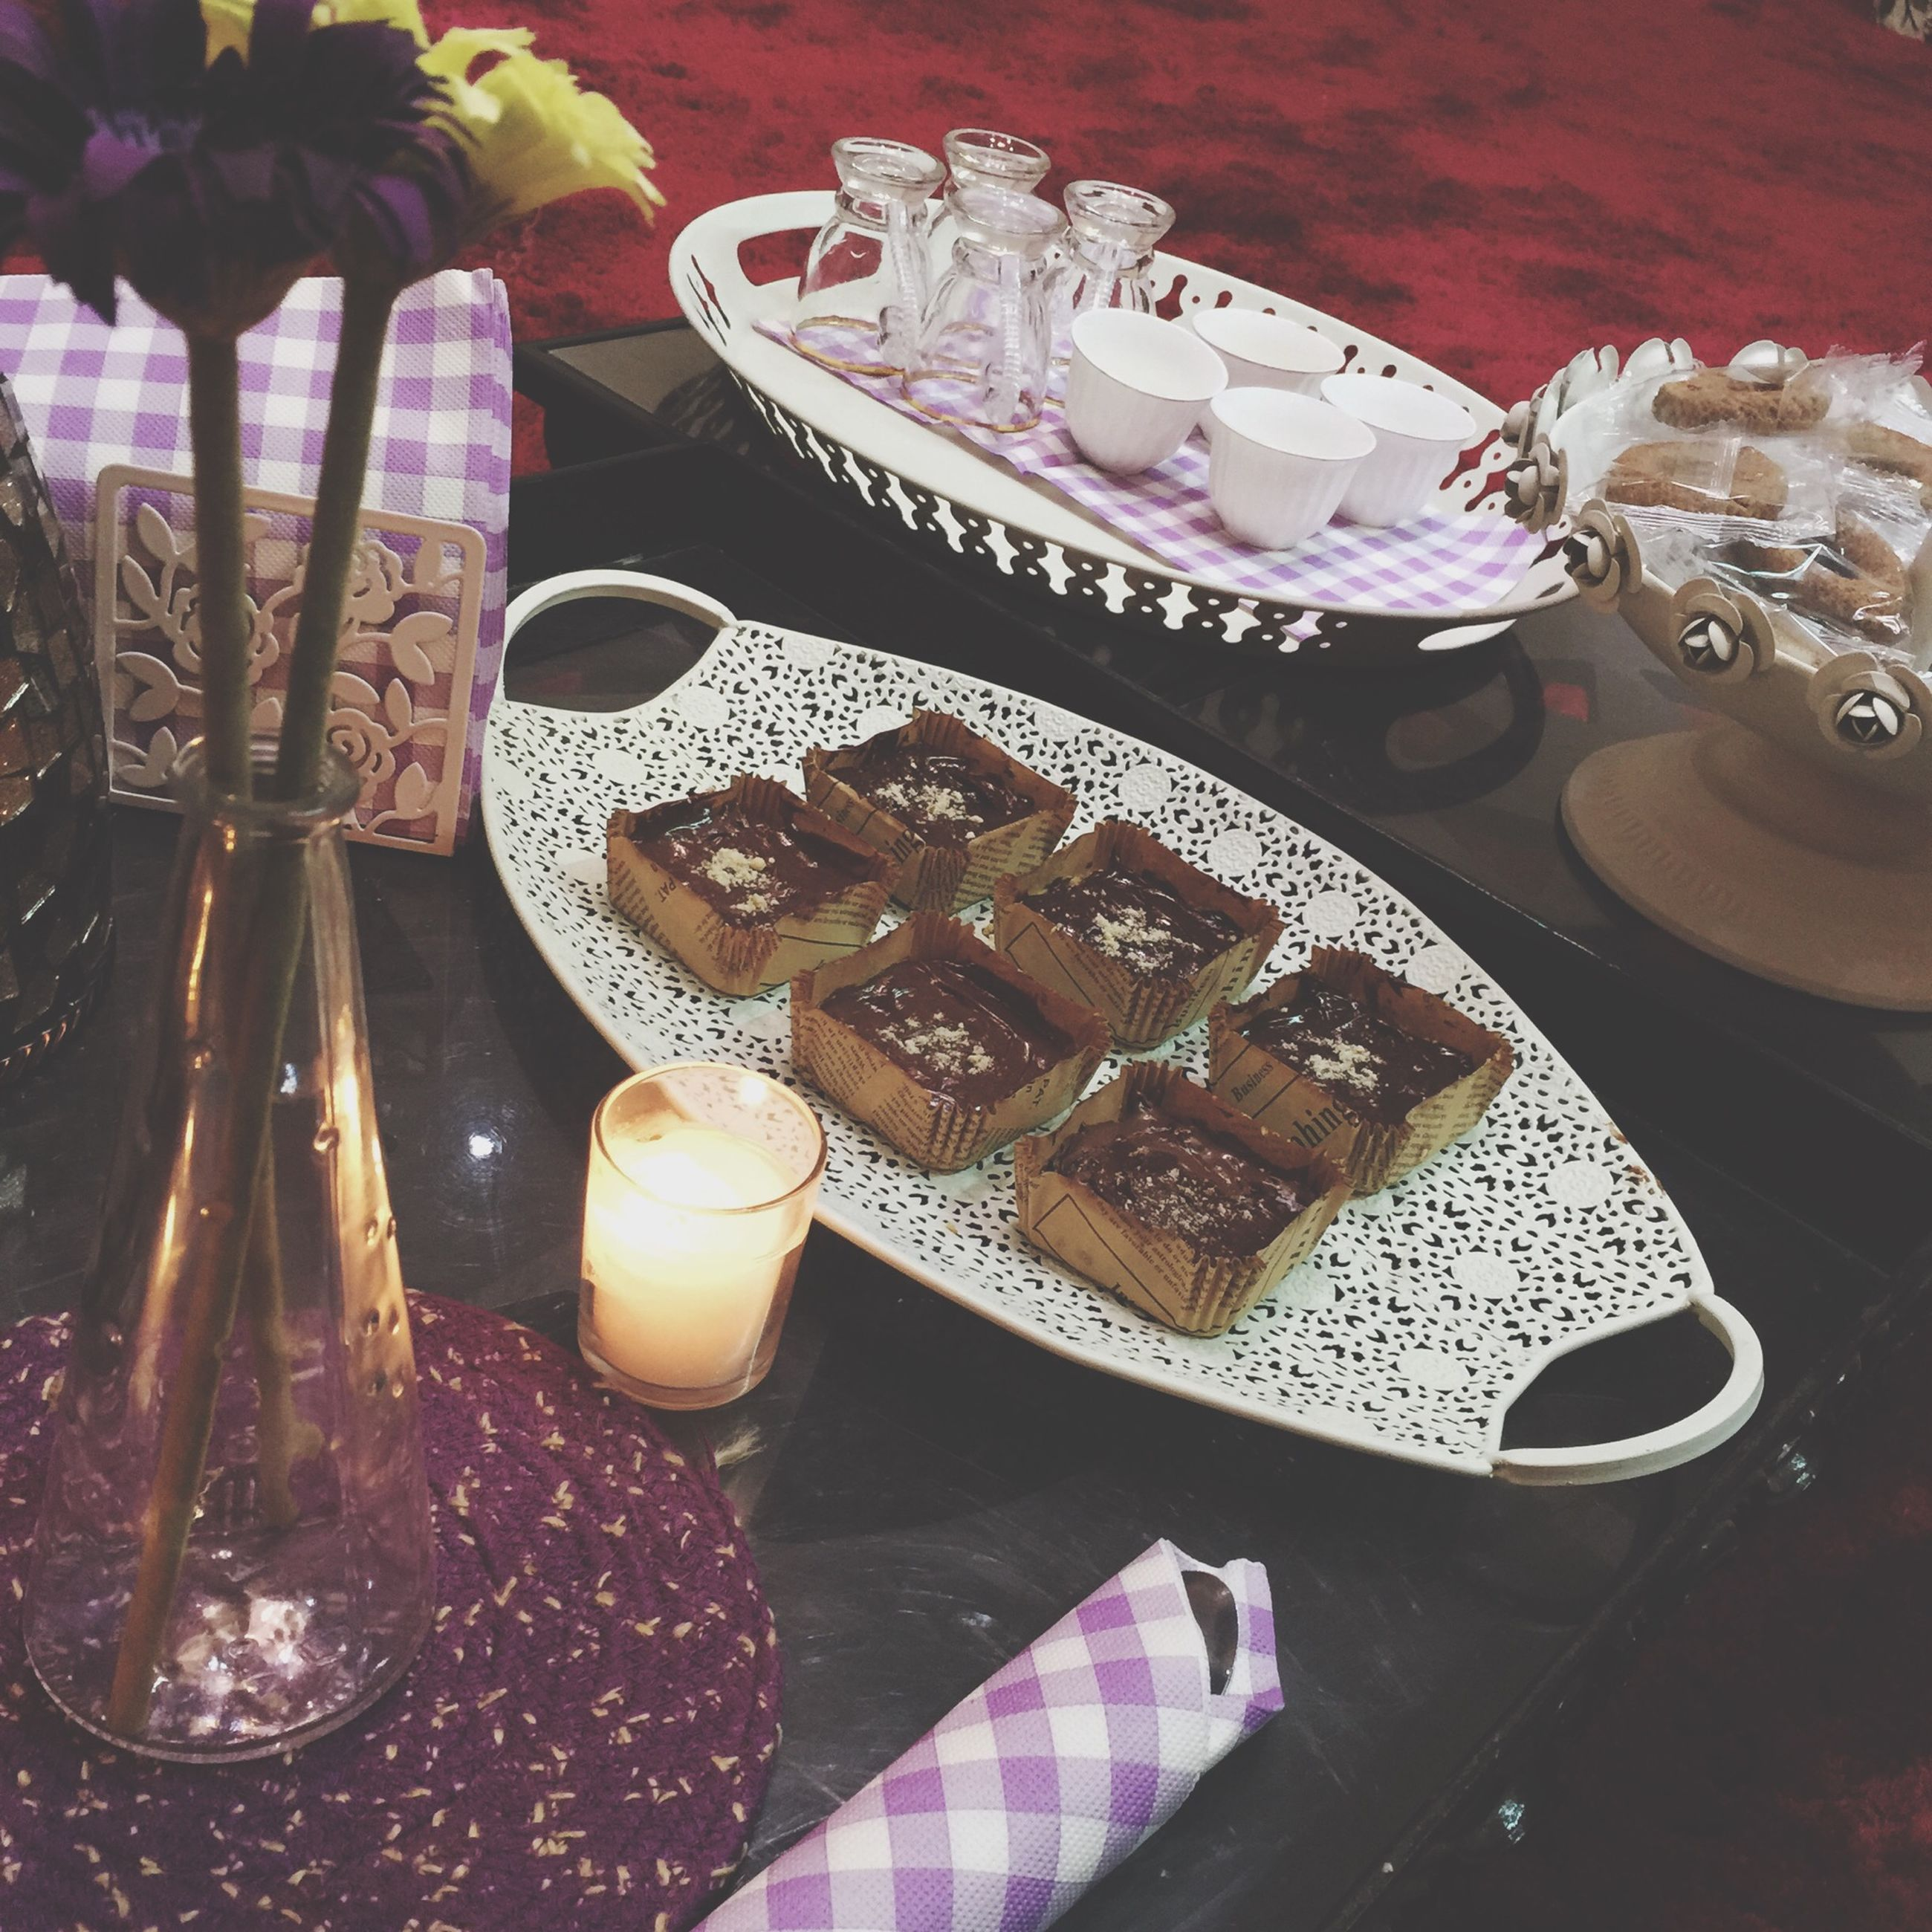 indoors, food and drink, table, still life, food, high angle view, sweet food, freshness, plate, dessert, ready-to-eat, indulgence, fork, cake, unhealthy eating, close-up, spoon, serving size, chocolate, drink